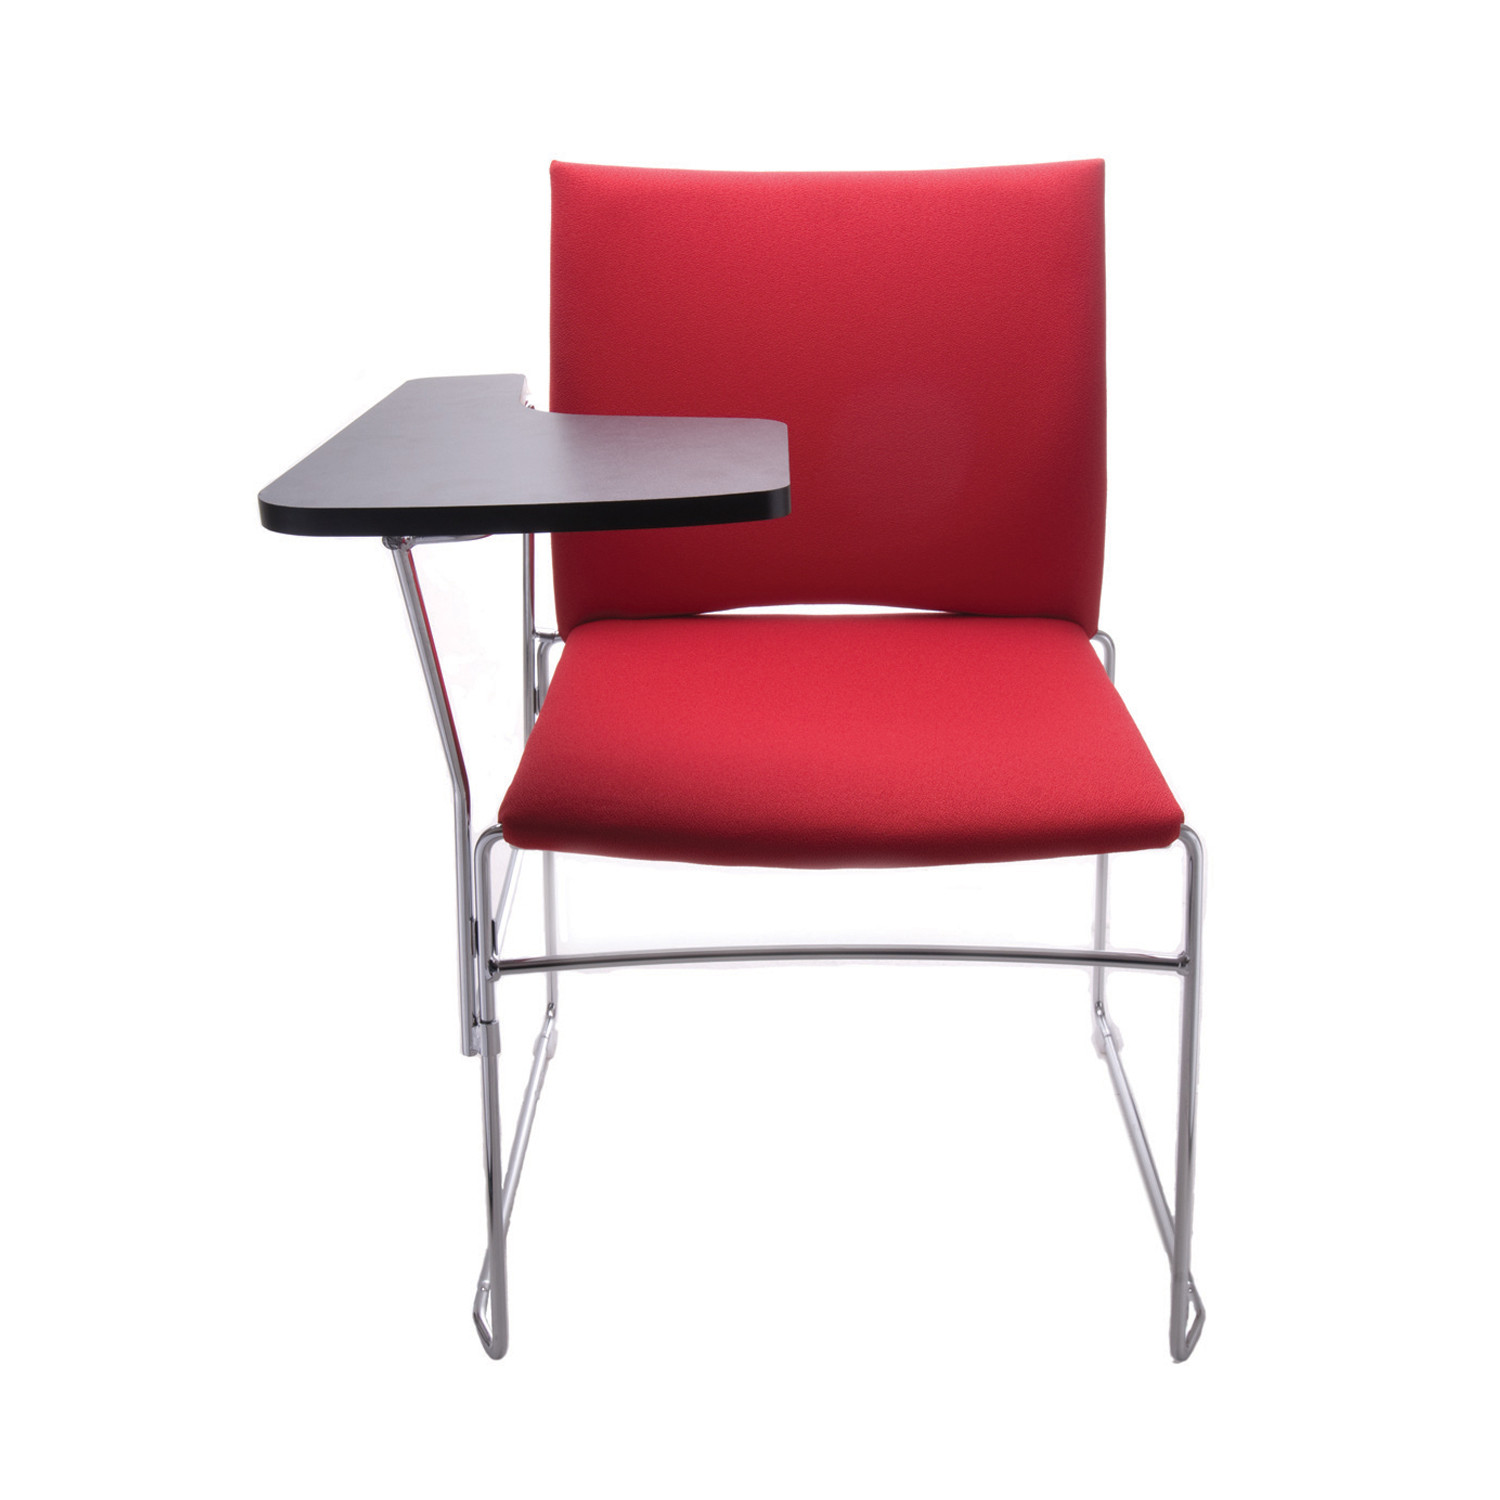 arro or space chair dining in grey online stac buy arrow to store modern create furniture dc stc stacking your chairs